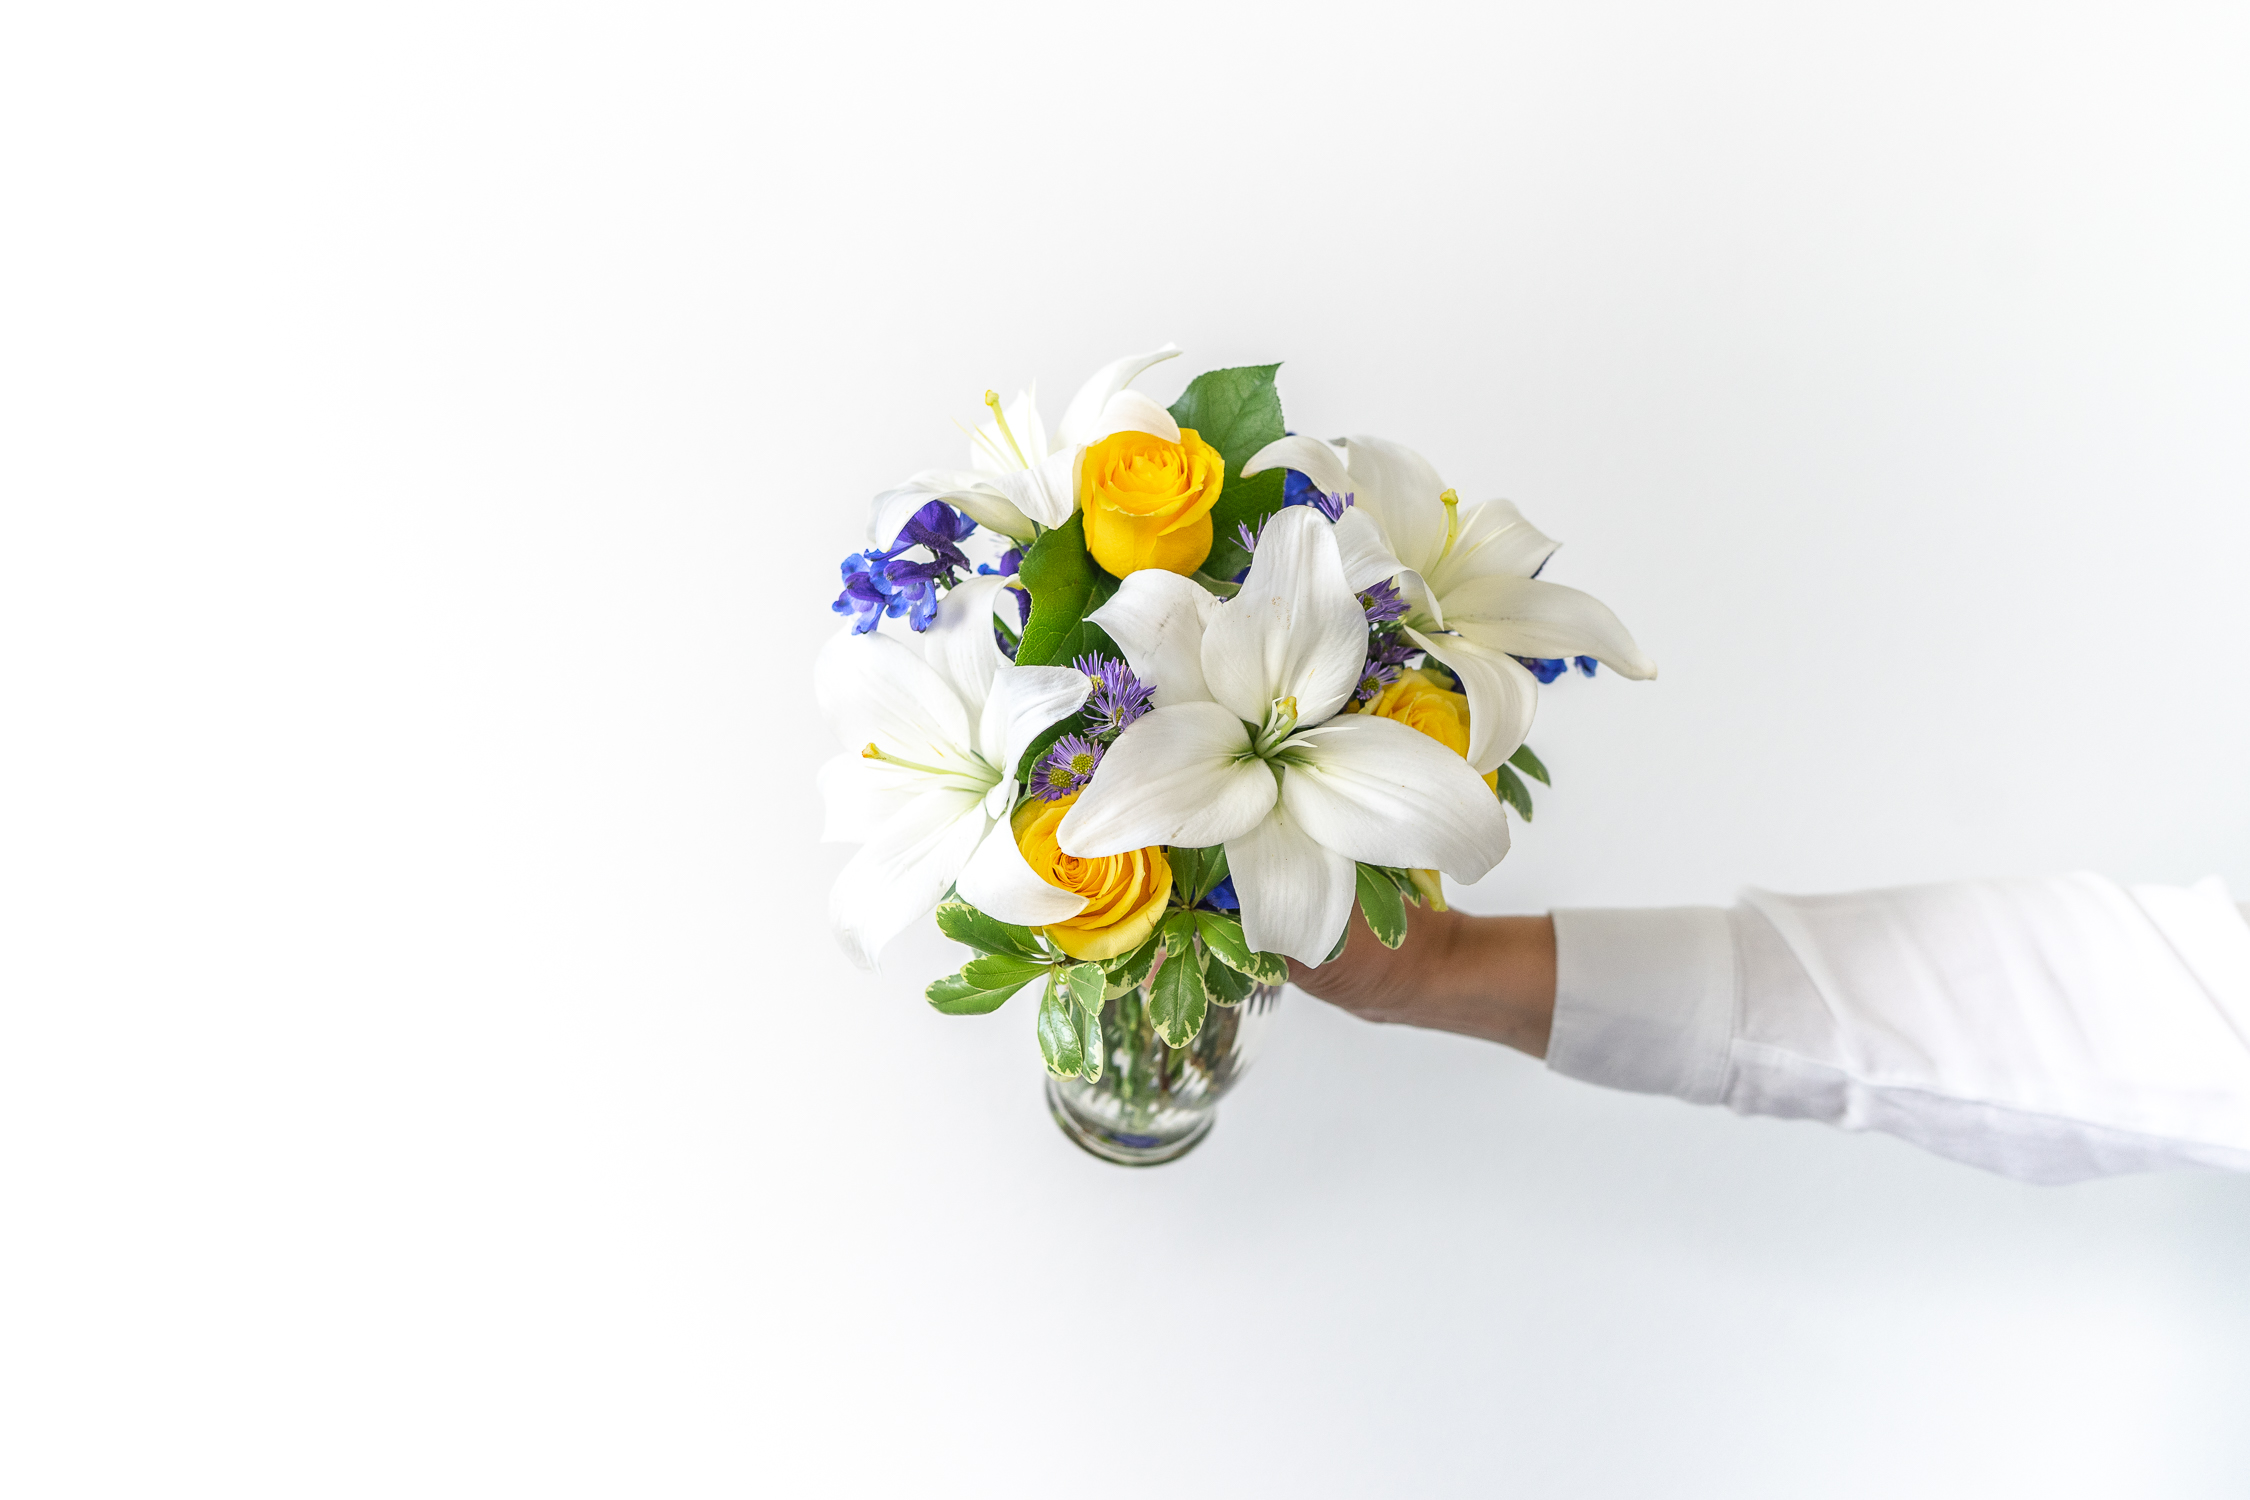 What is the meaning of white lilies?